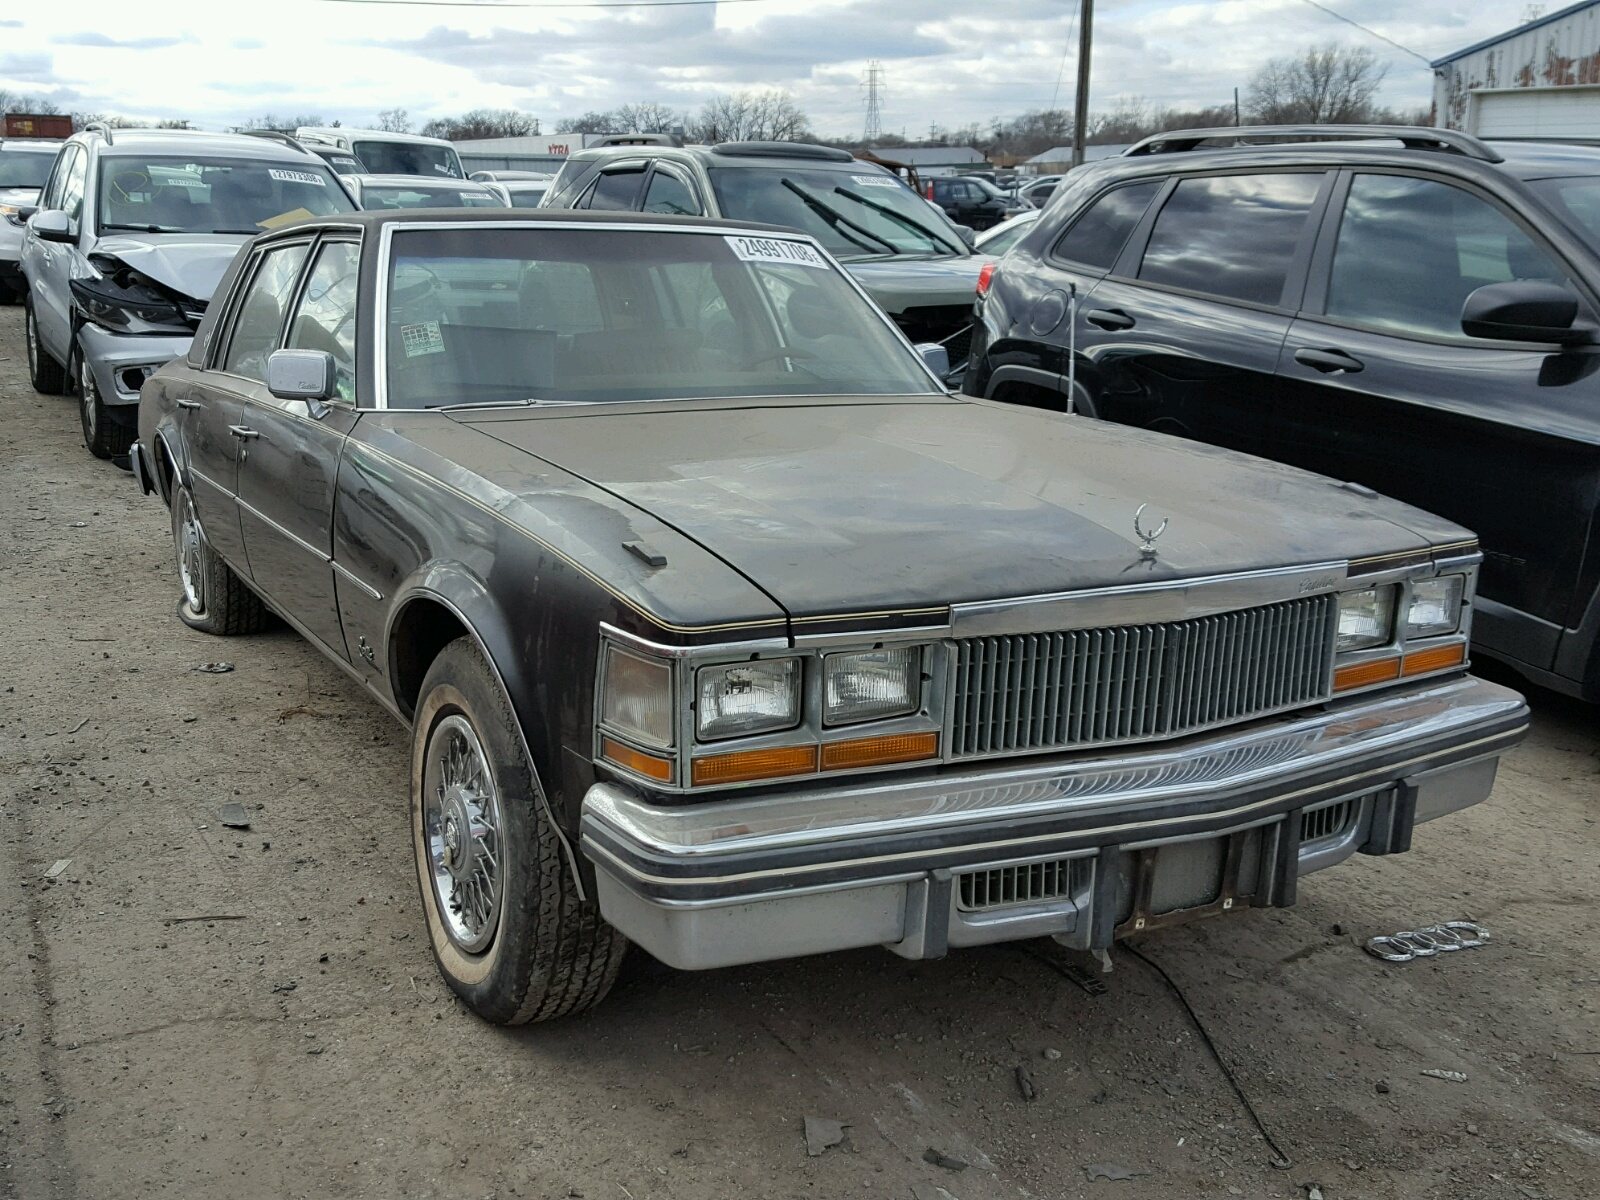 Salvage 1977 Cadillac SEVILLE for sale